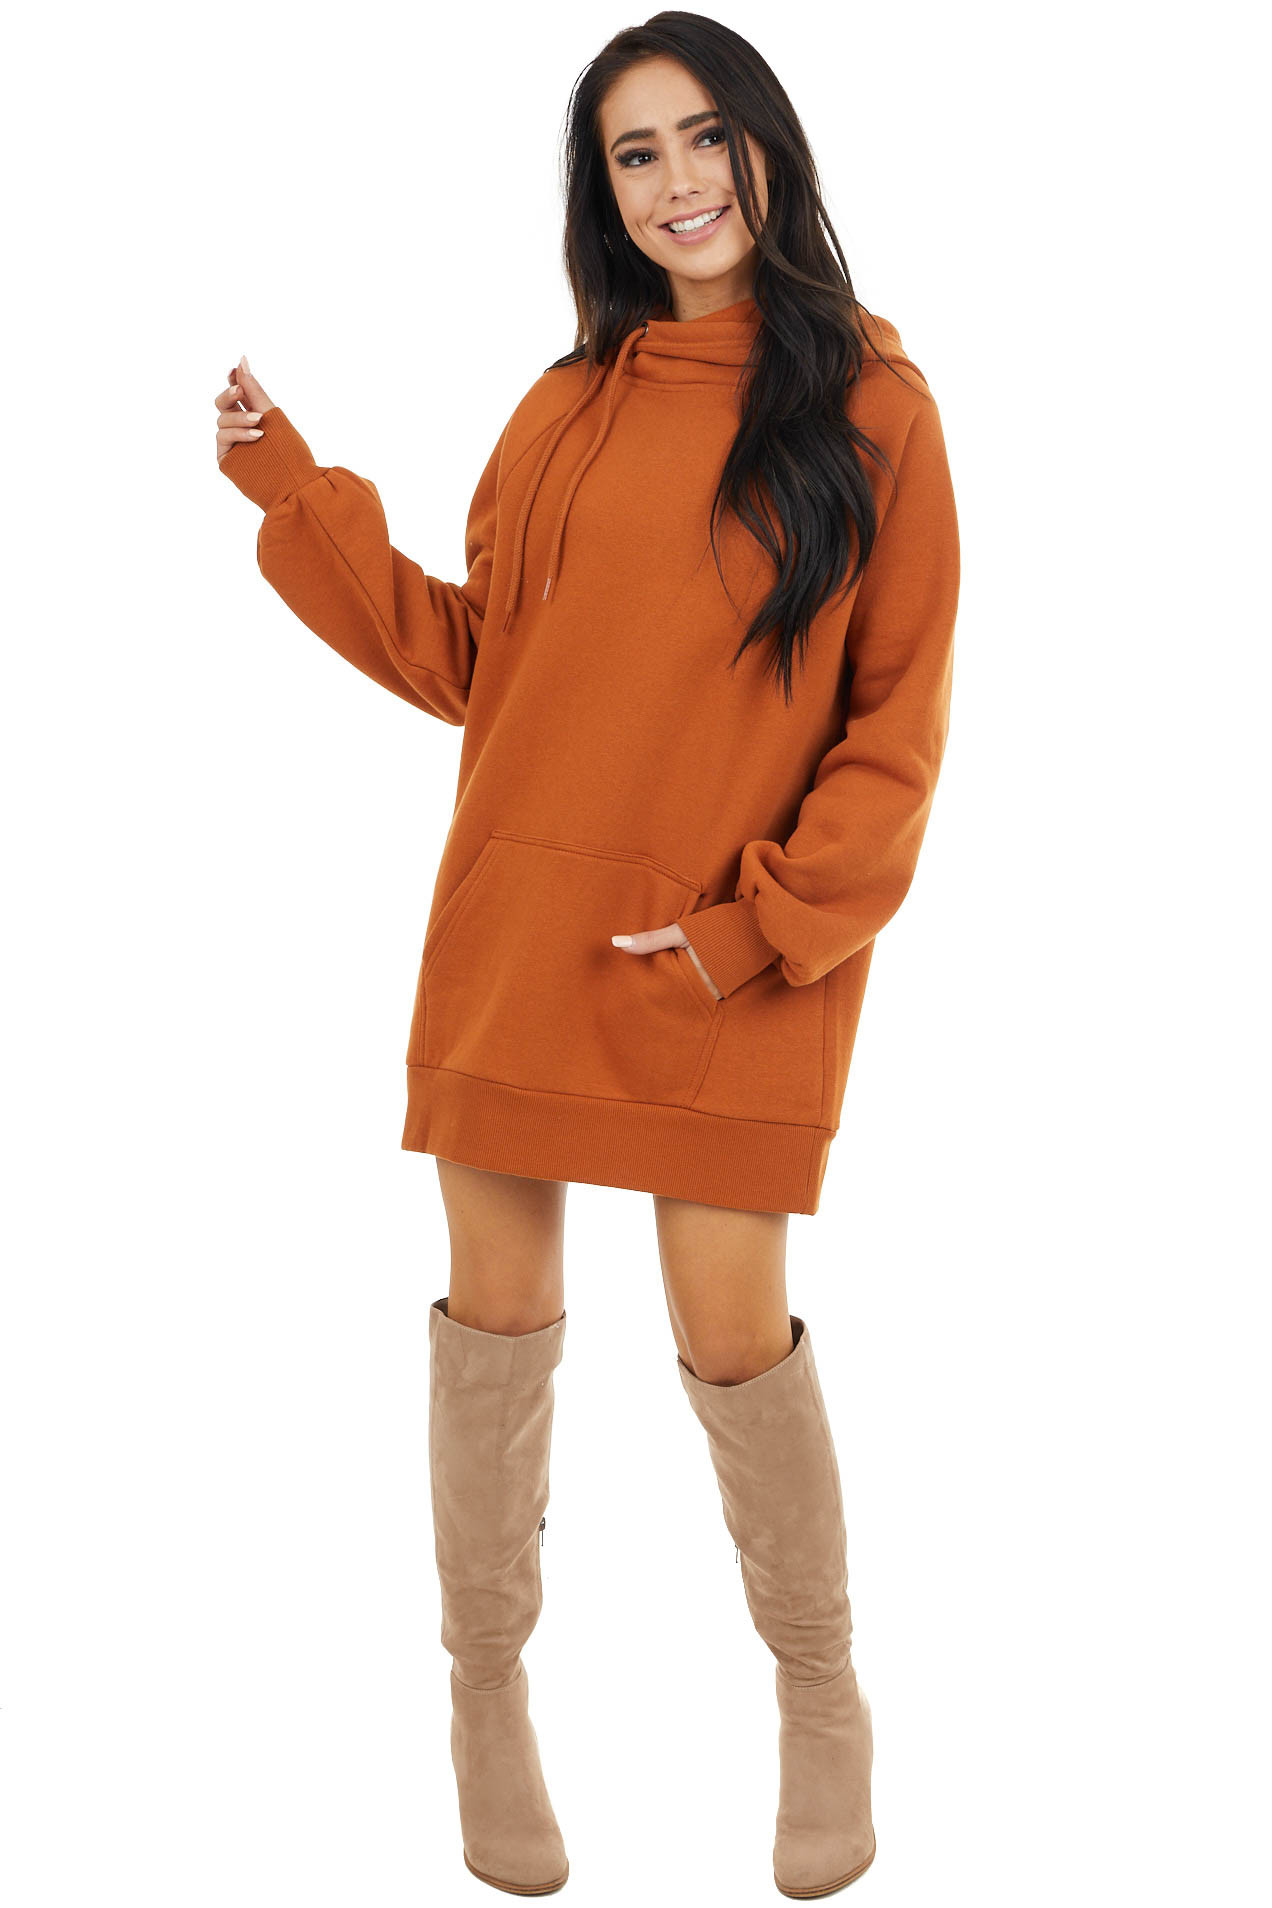 Caramel Sweatshirt Dress with Side Drawstring Hood and Pouch